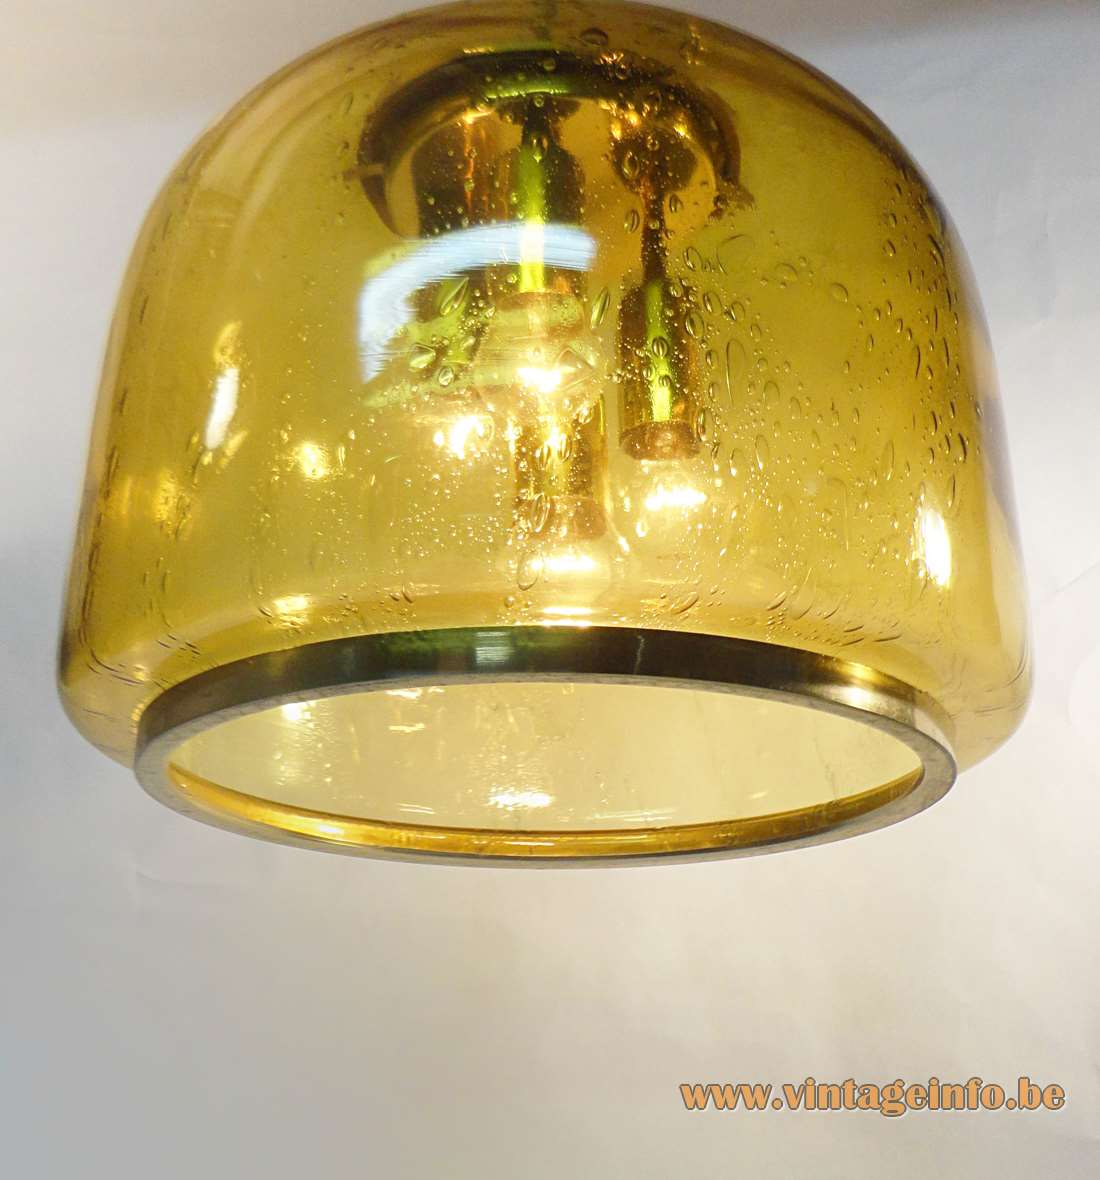 Doria pendant lamp amber yellow bubble glass bell clock form chrome & brass 1970s Germany MCM Mid-Century Modern